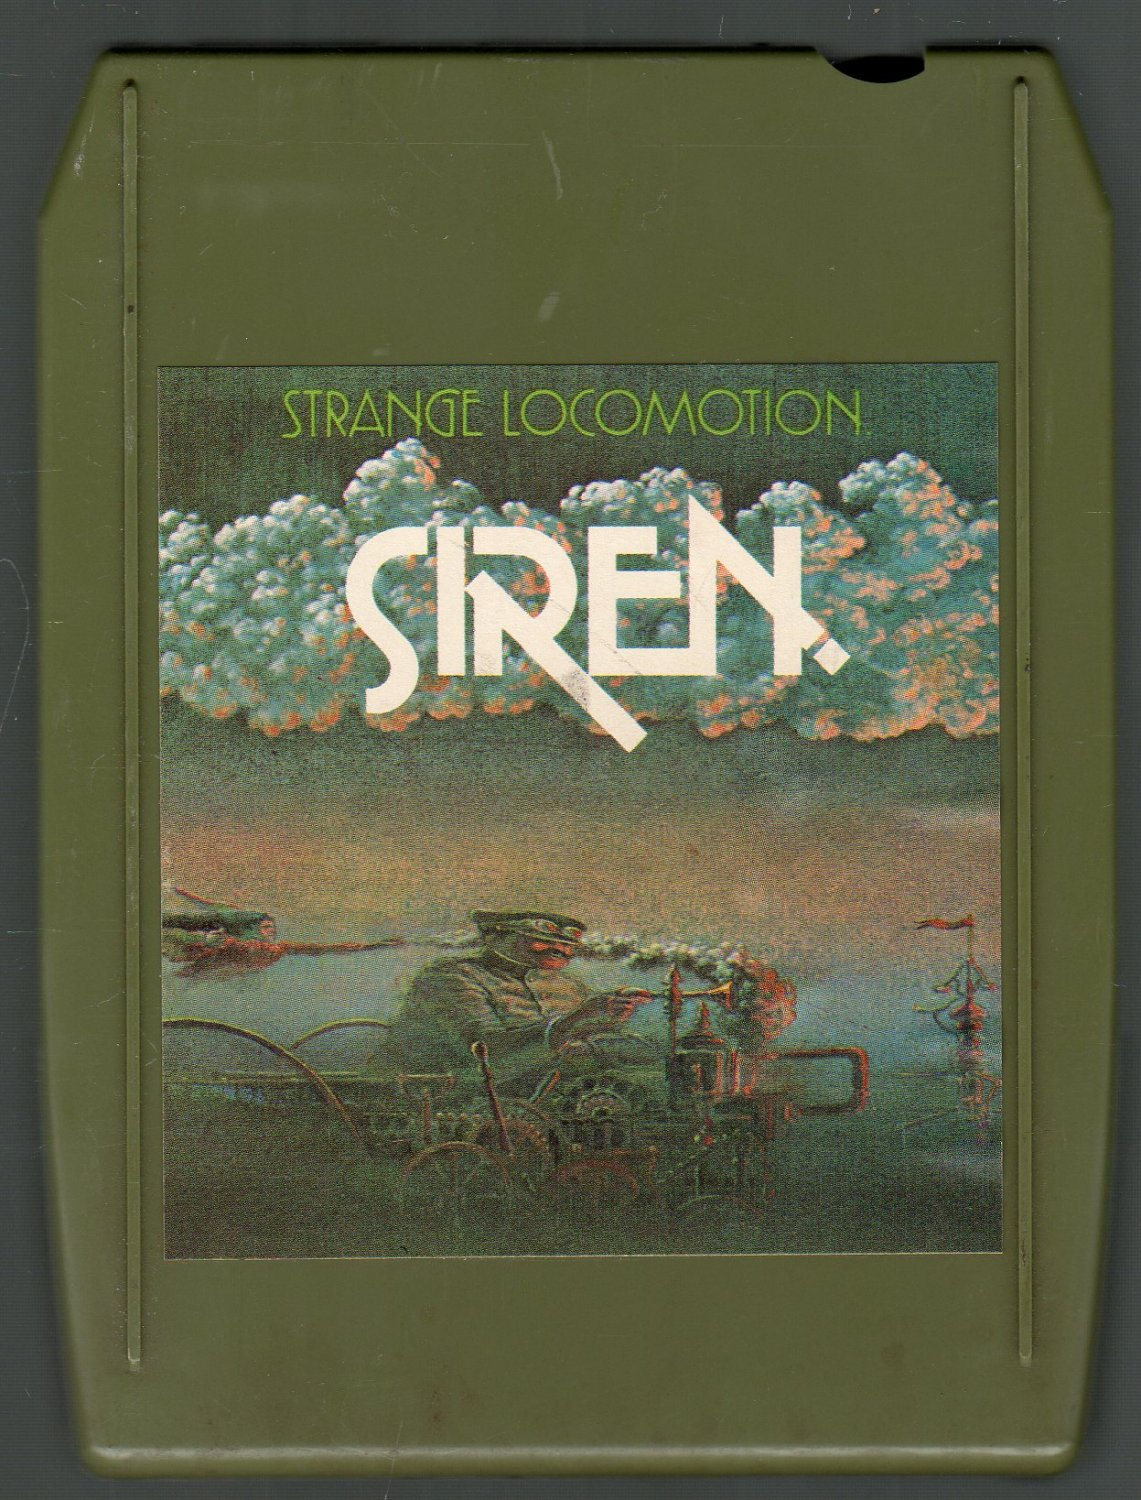 Siren - Strange Locomotion 8-track tape